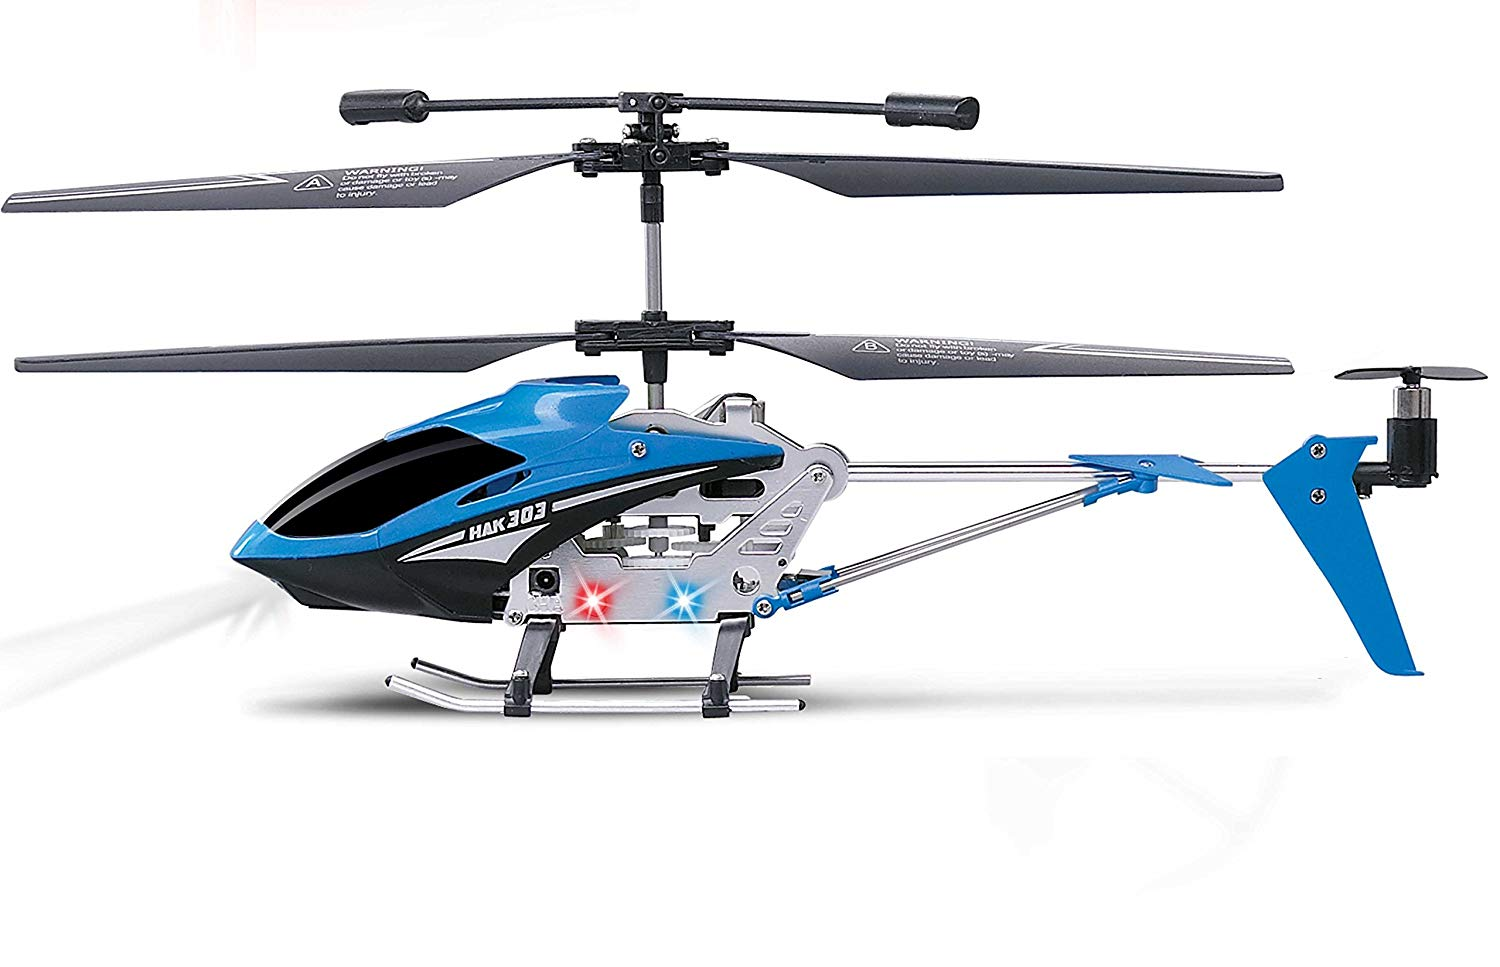 Haktoys-HAK303-Infrared-Control-3.5-Channel 9'' RC-Helicopter